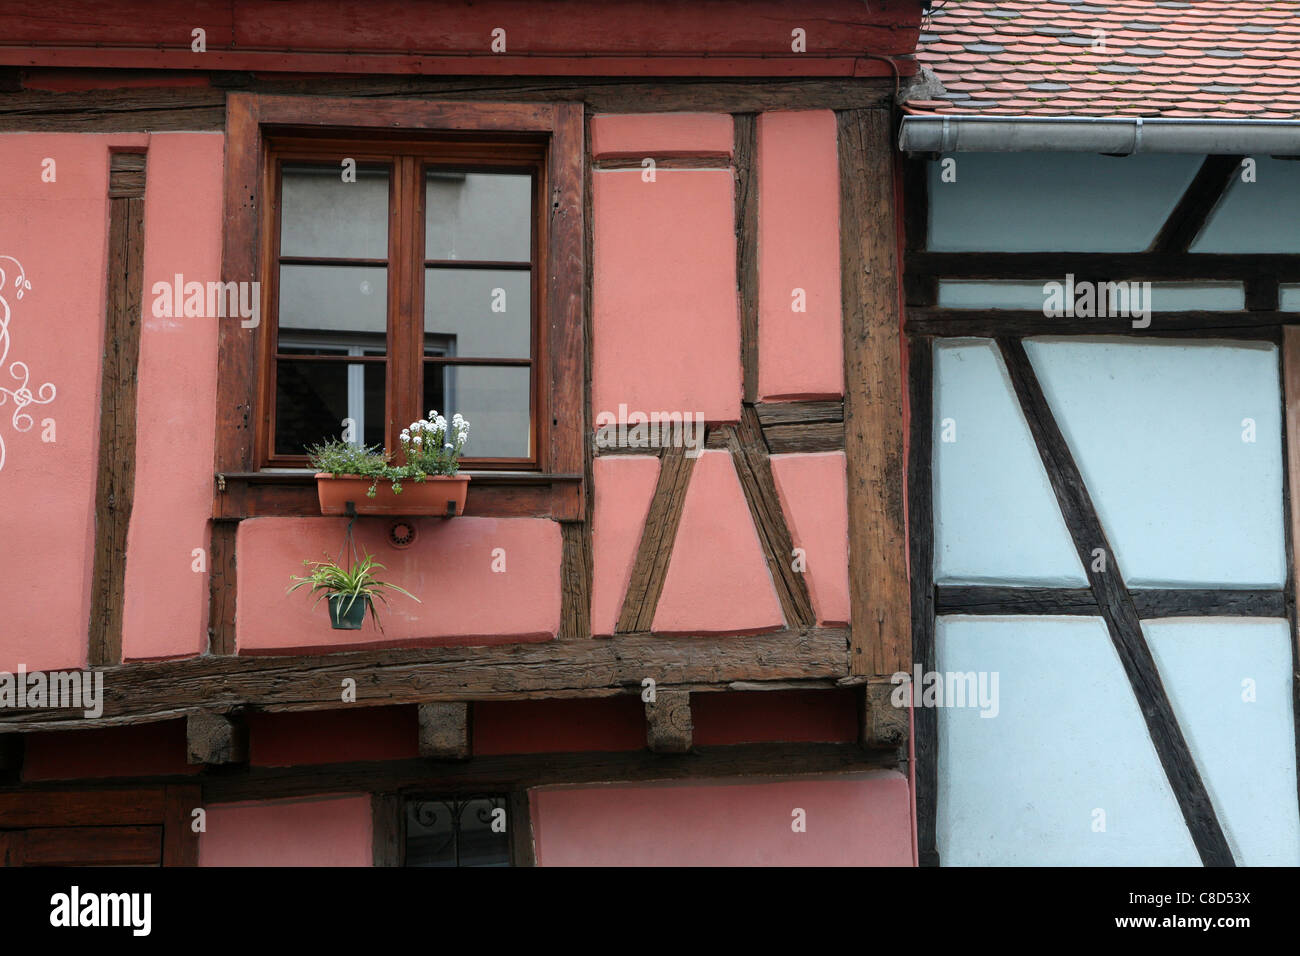 Timber-frame houses in the historic centre of Colmar, France. Stock Photo